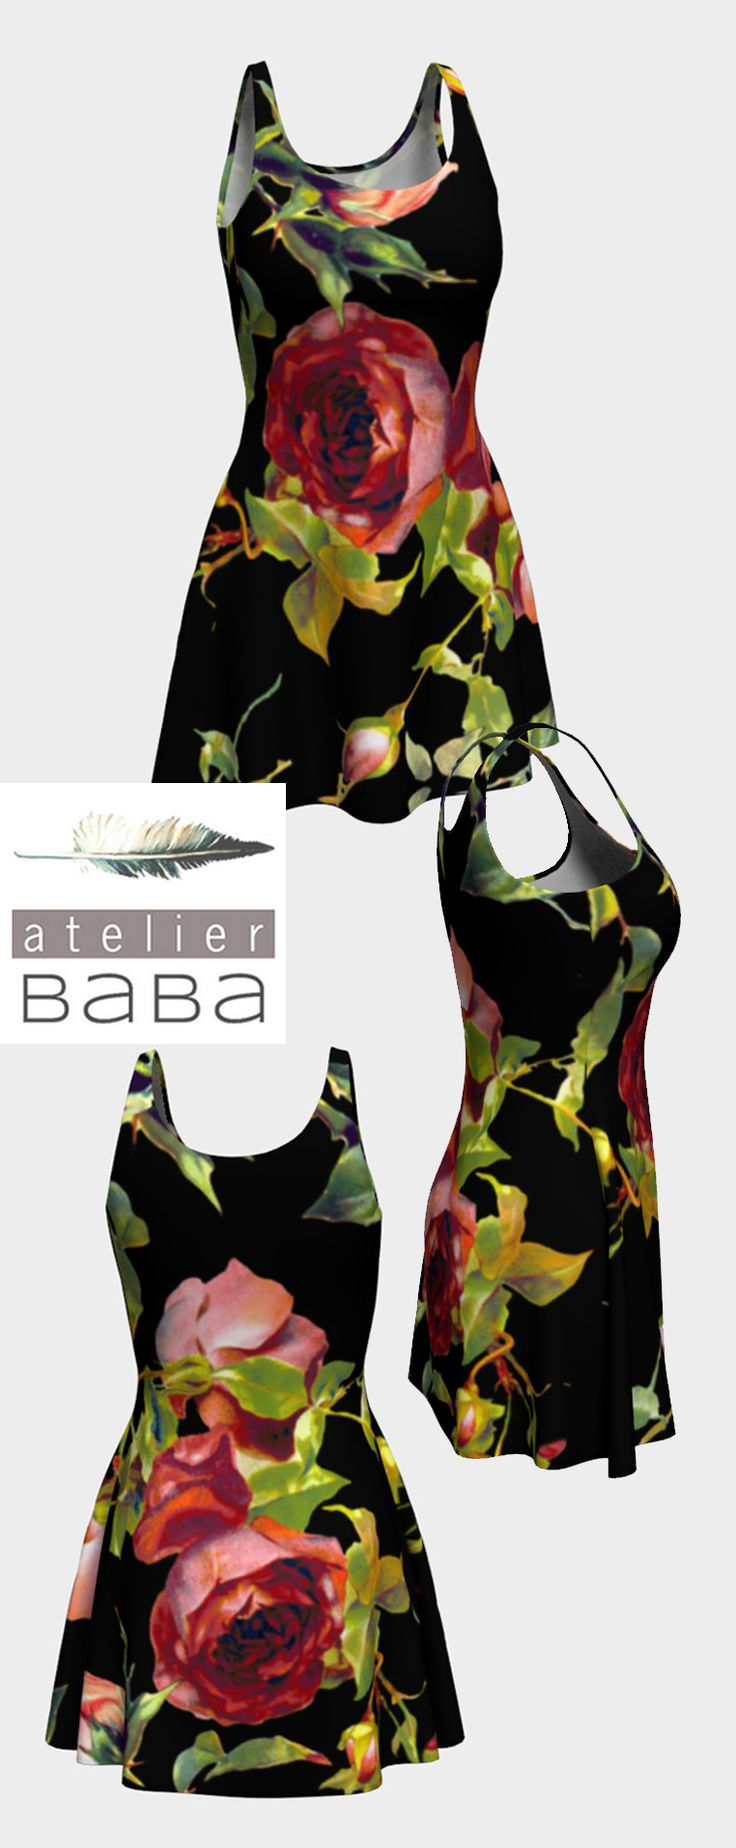 Evening Rose Flare Dress by atelierbaba on Art of Where. Lovely